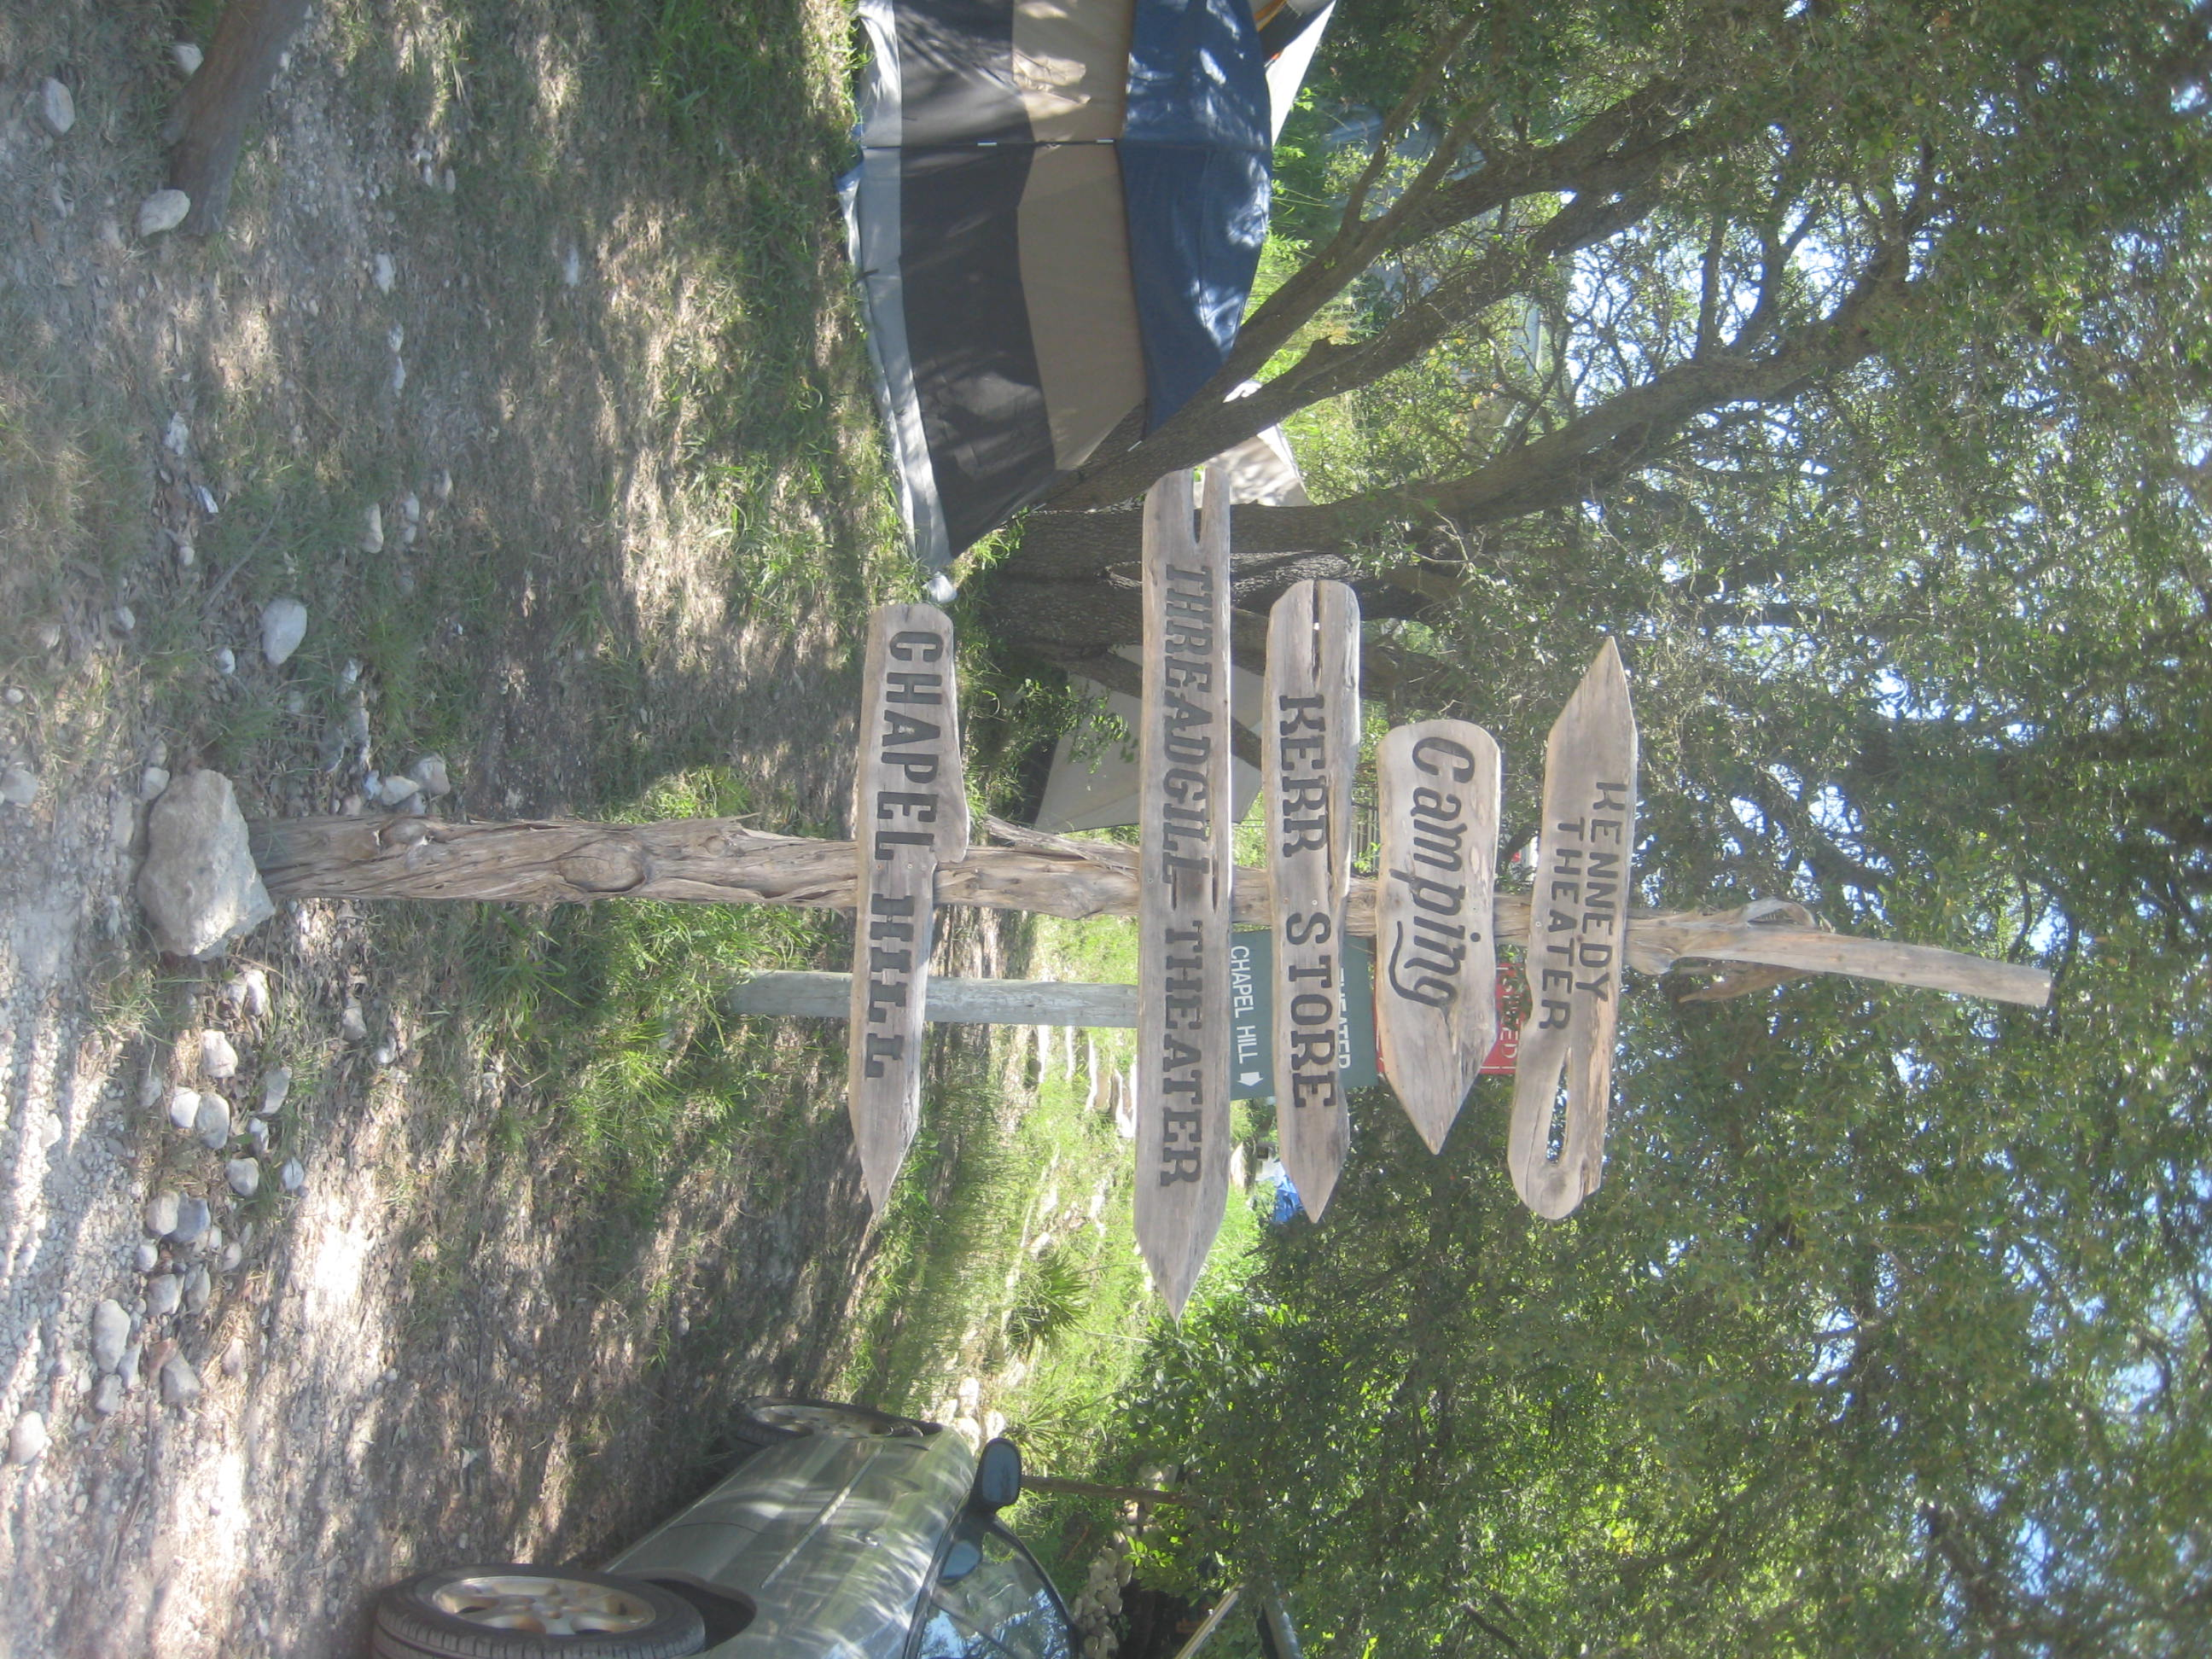 All you need to know to find your way at Kerrville.